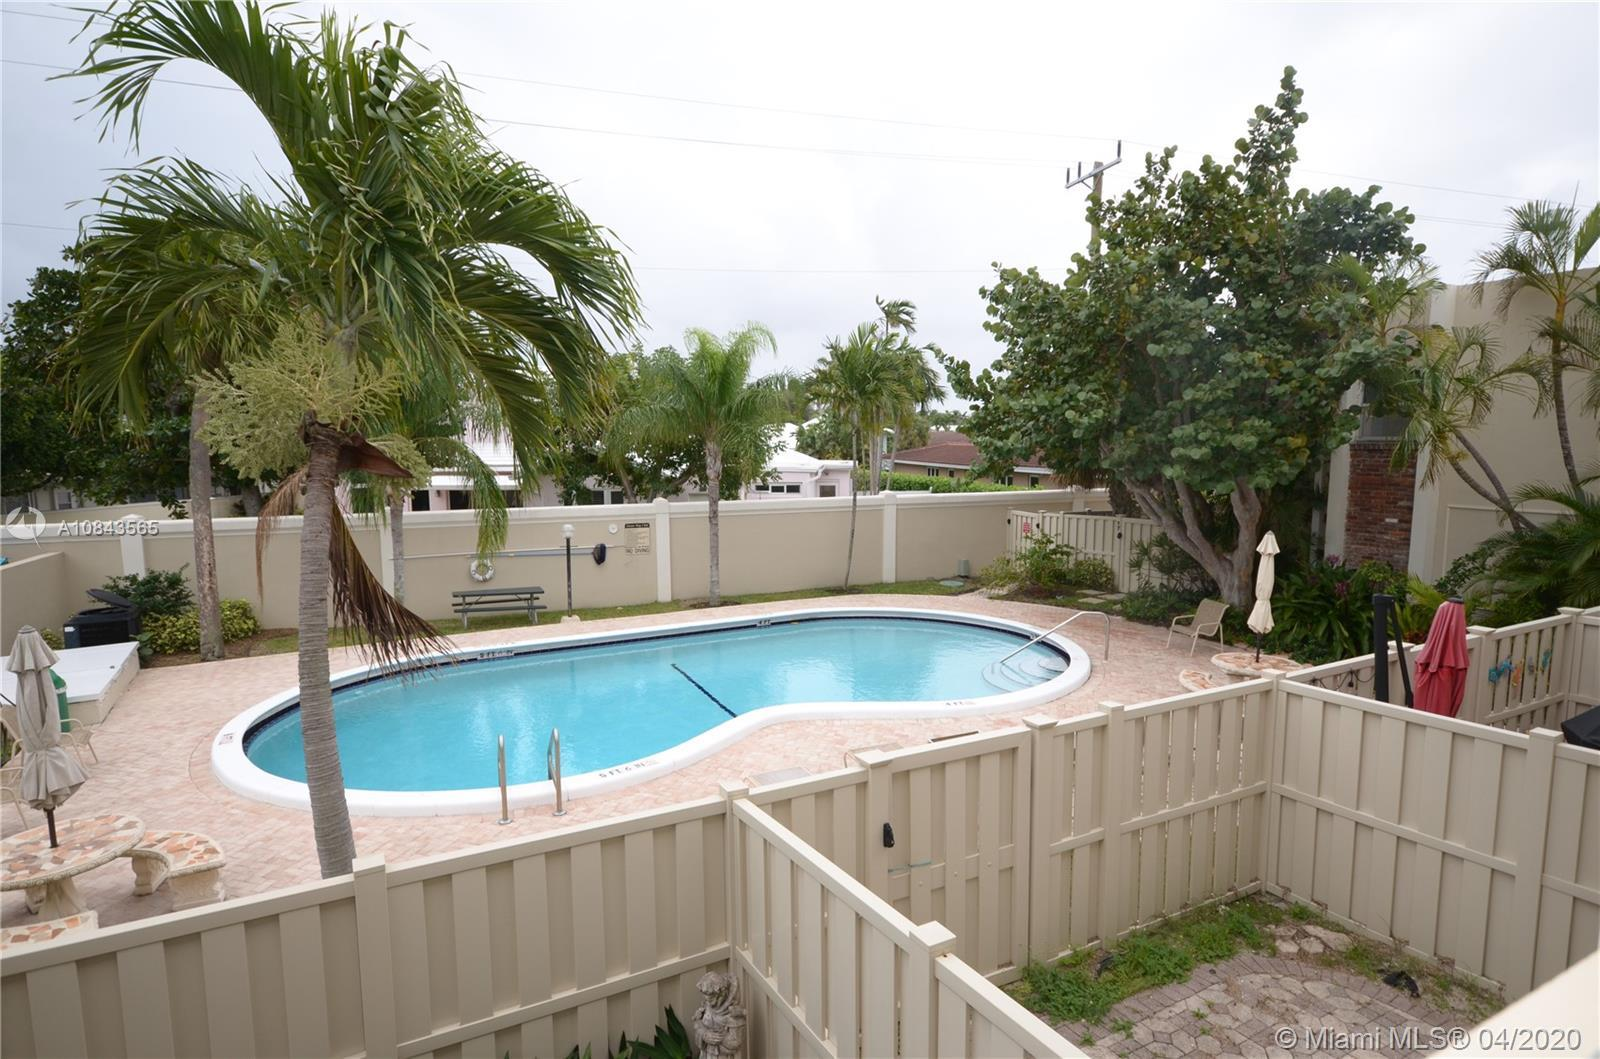 Great community , across the street from the Seawatch Restaurant. This 2 bedroom 2 ½ bath condo is r